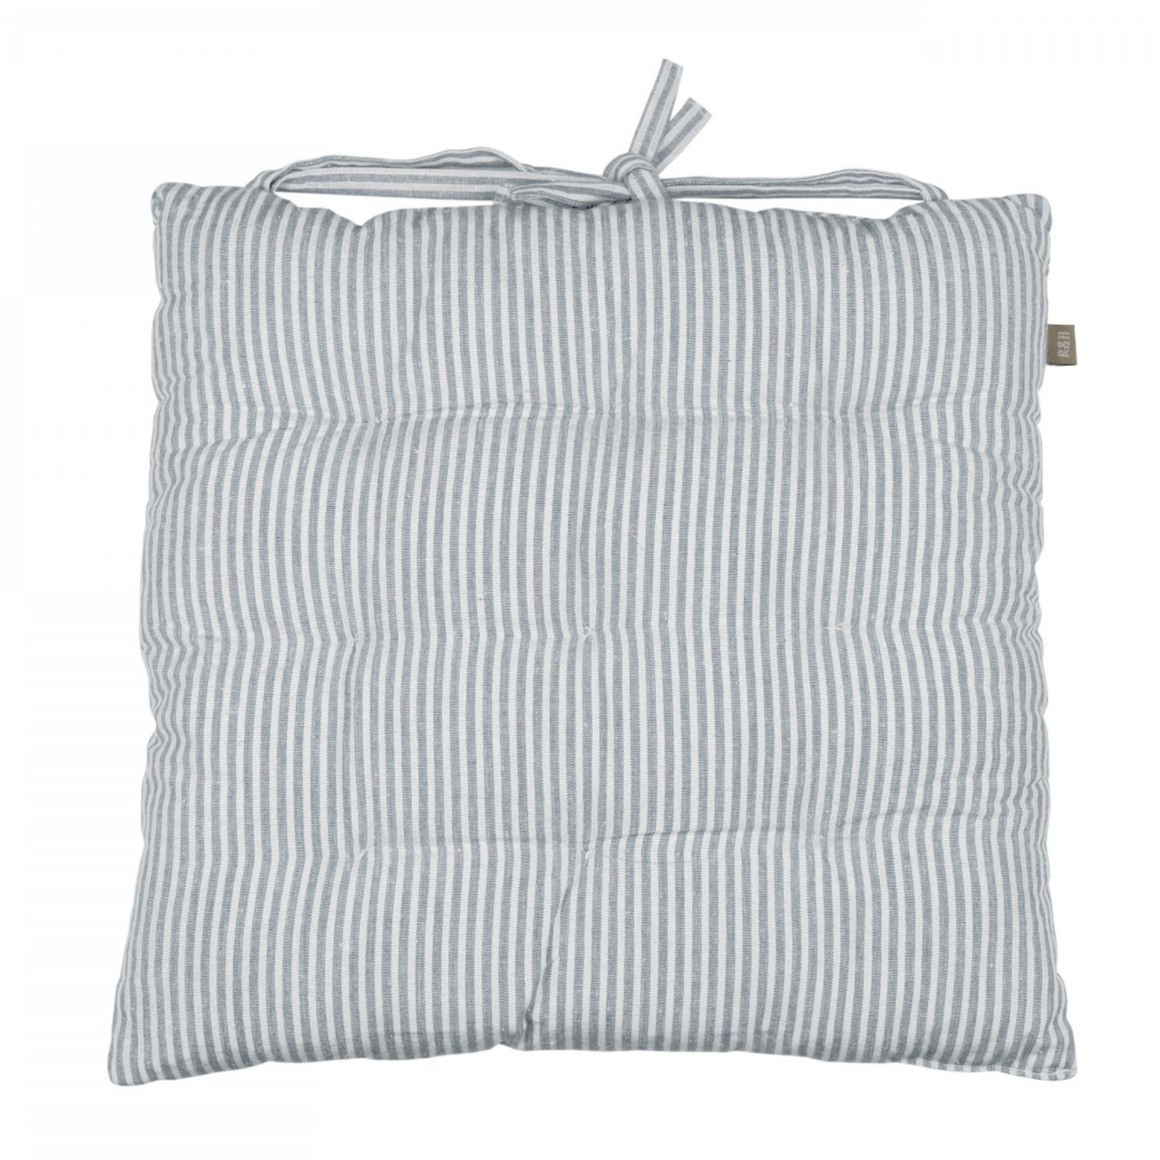 ABBEY STRIPE SEAT PAD/CUSHION - PRUSSIA BLUE